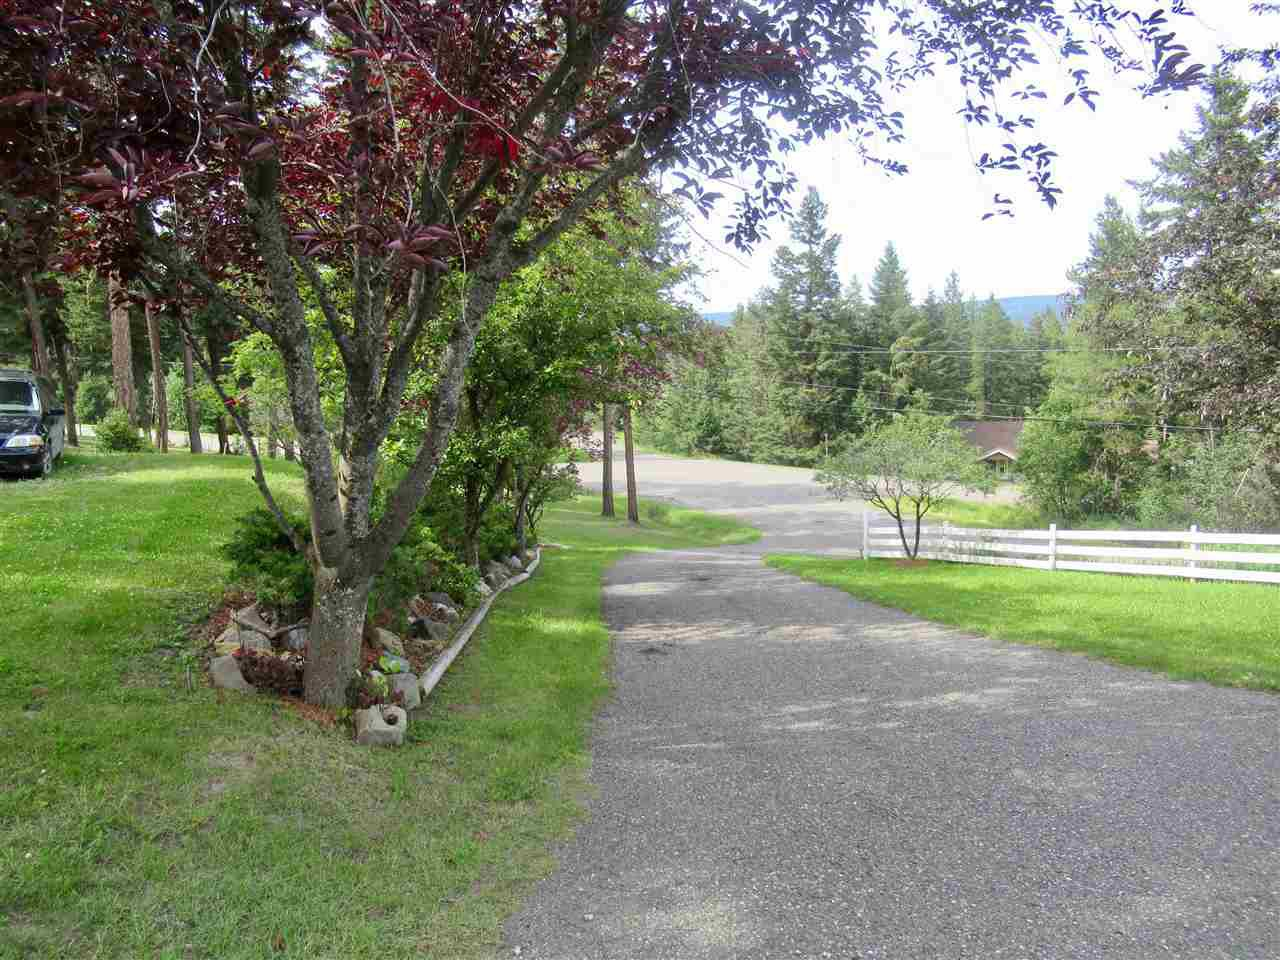 Photo 3: Photos: 607 ROBERTS Drive in Williams Lake: Esler/Dog Creek House for sale (Williams Lake (Zone 27))  : MLS®# R2391926